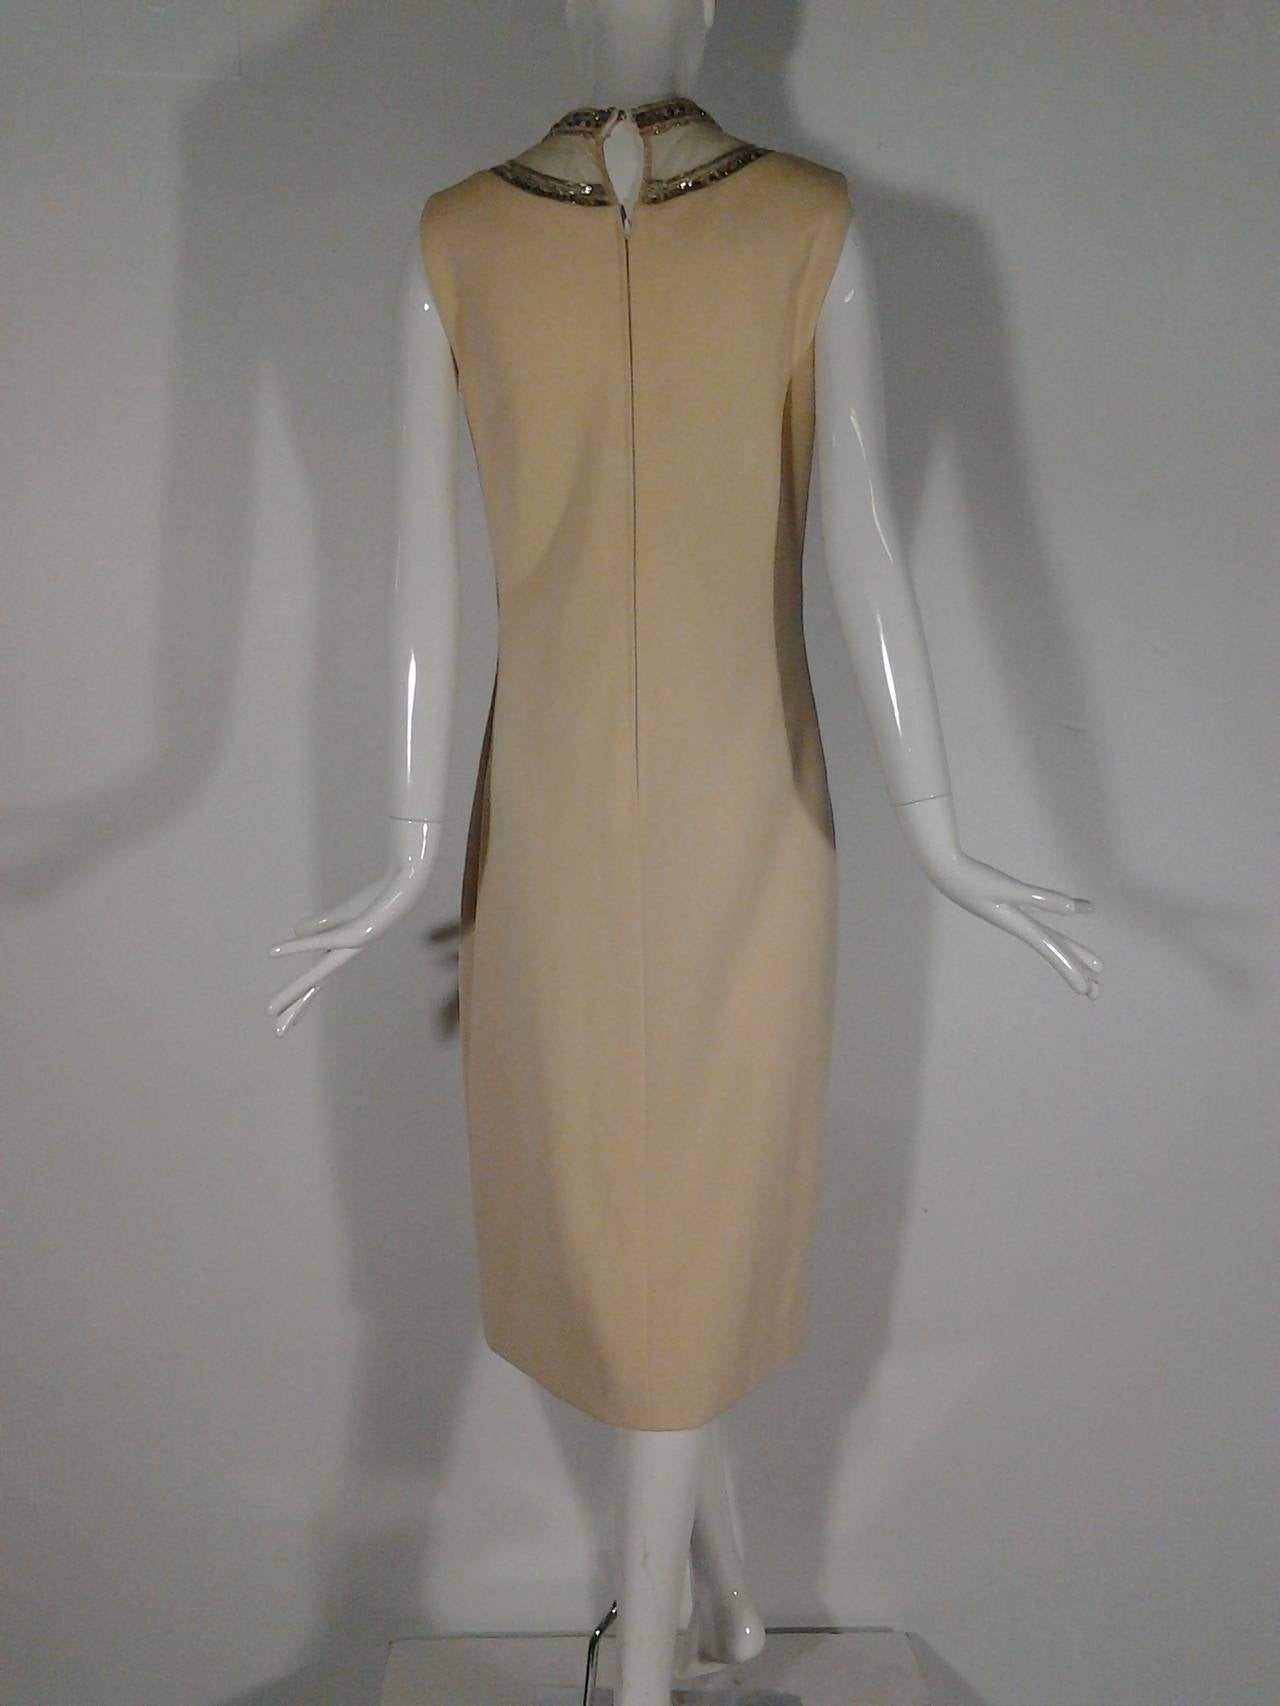 Mr Blackwell Cocktail Dress with Nude Panel and Elaborate Rhinestones 4